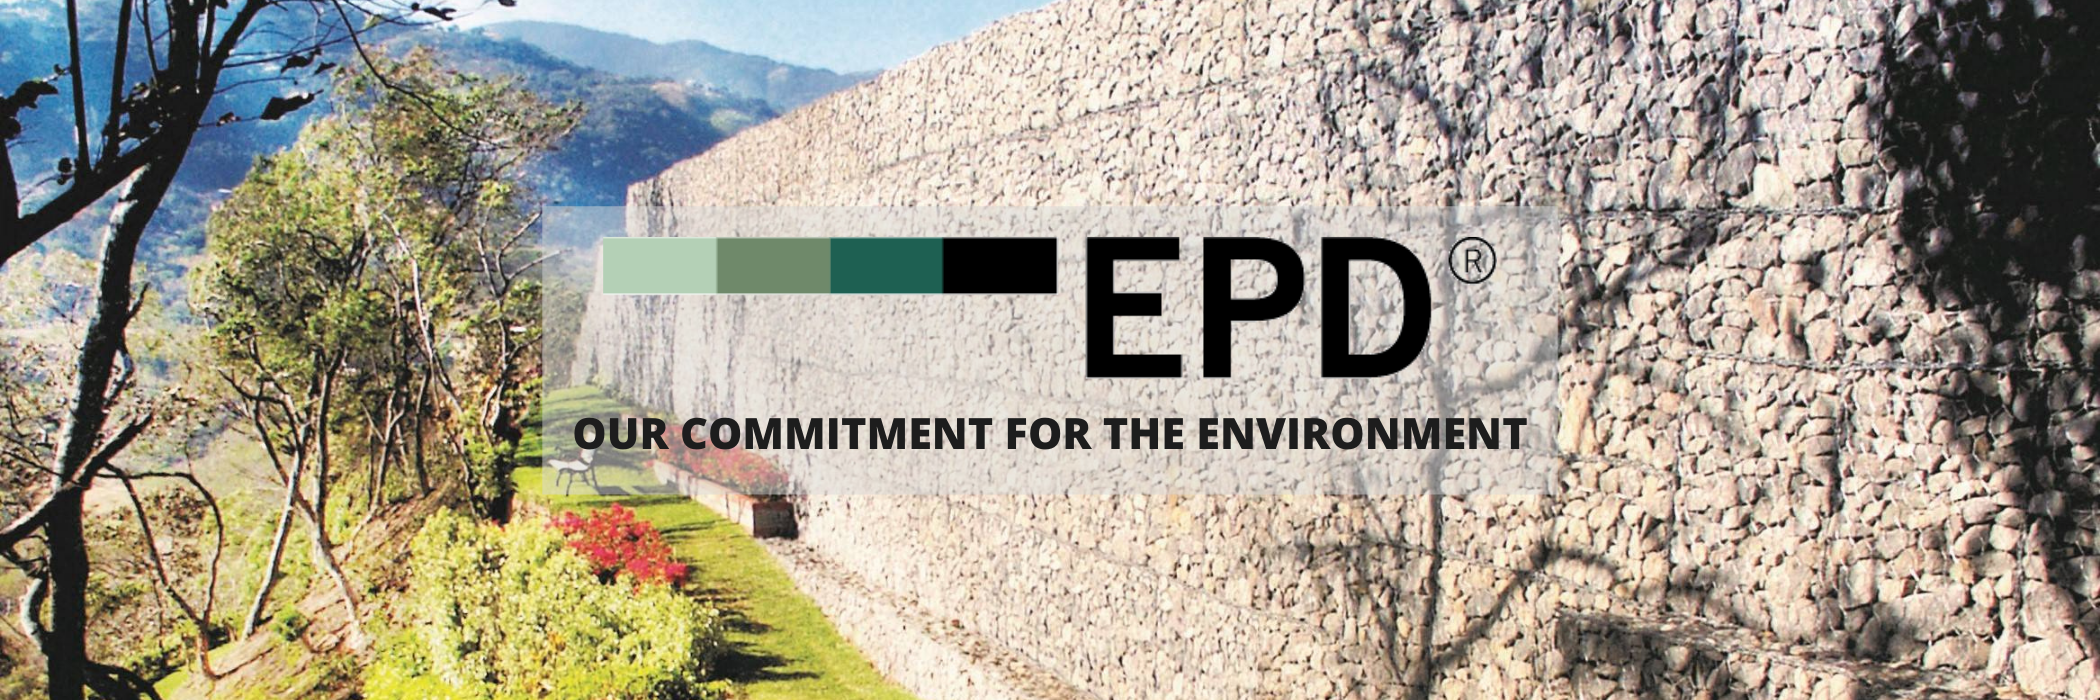 our-commitment-for-the-environment-1